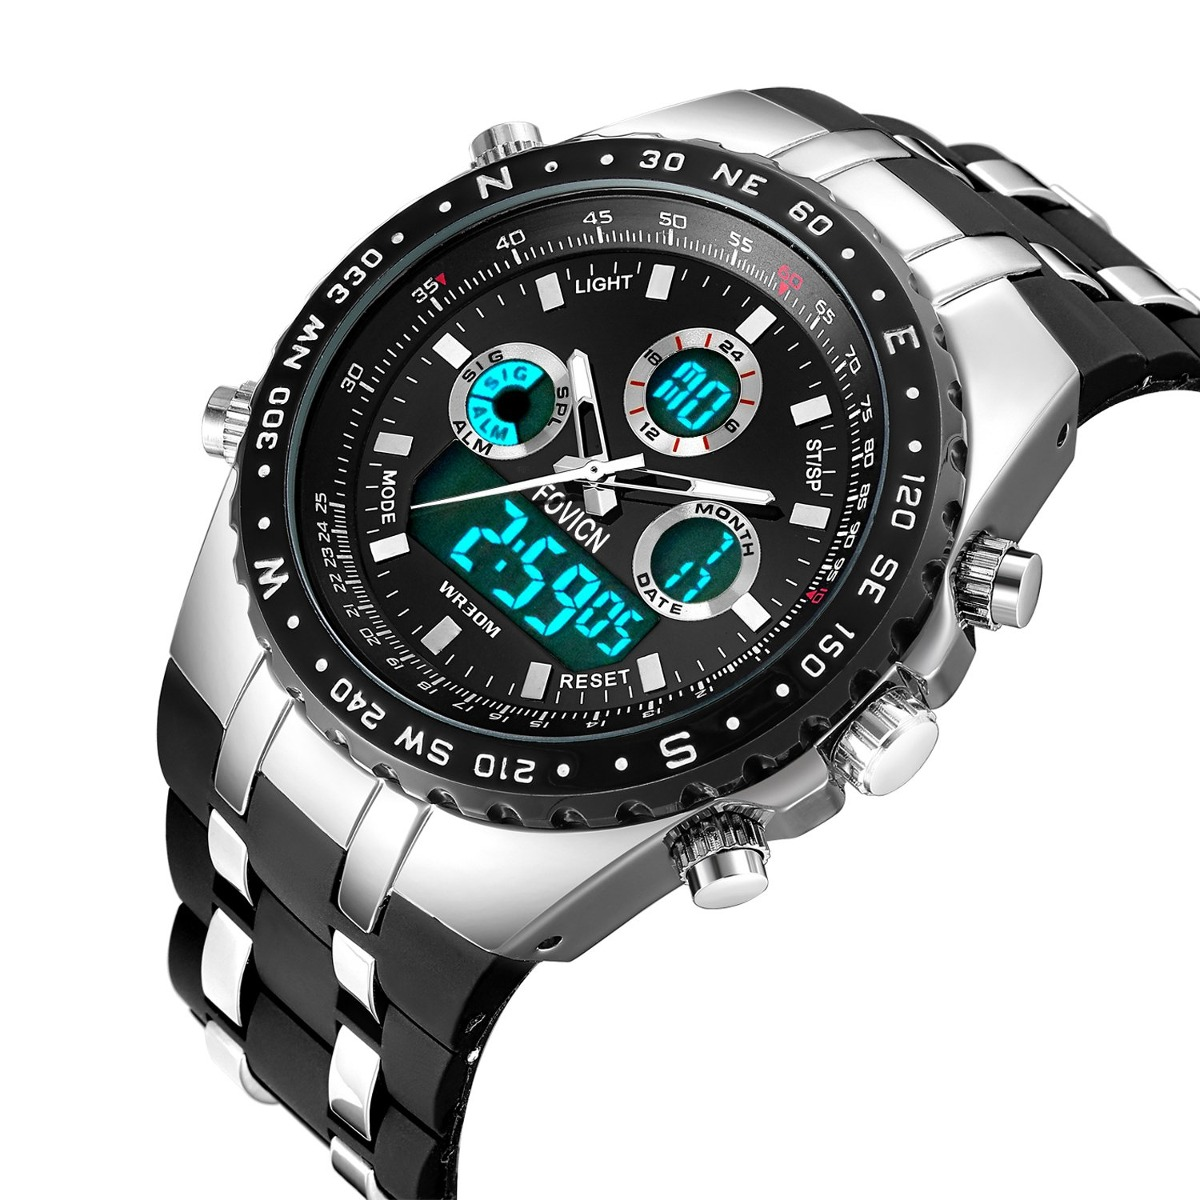 P Relojes Reloj Men De Sport Watch Cara Mens Grande Black MpqSUVGz